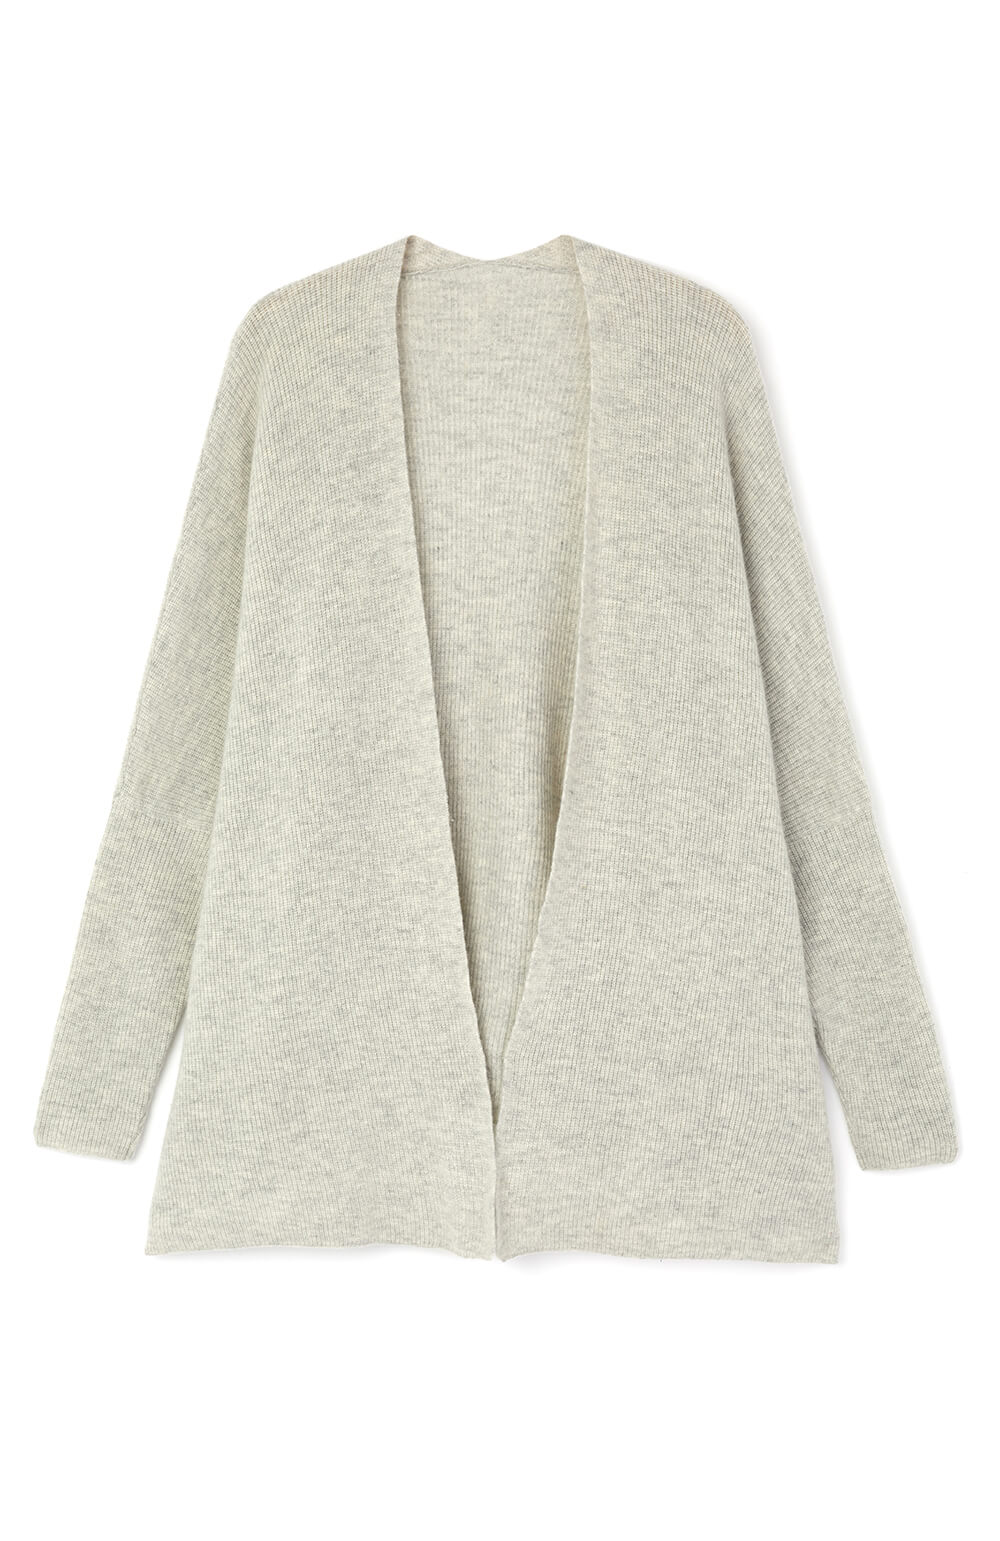 Cashmere Cardi (cardi) - Grey | Bonsoir of London